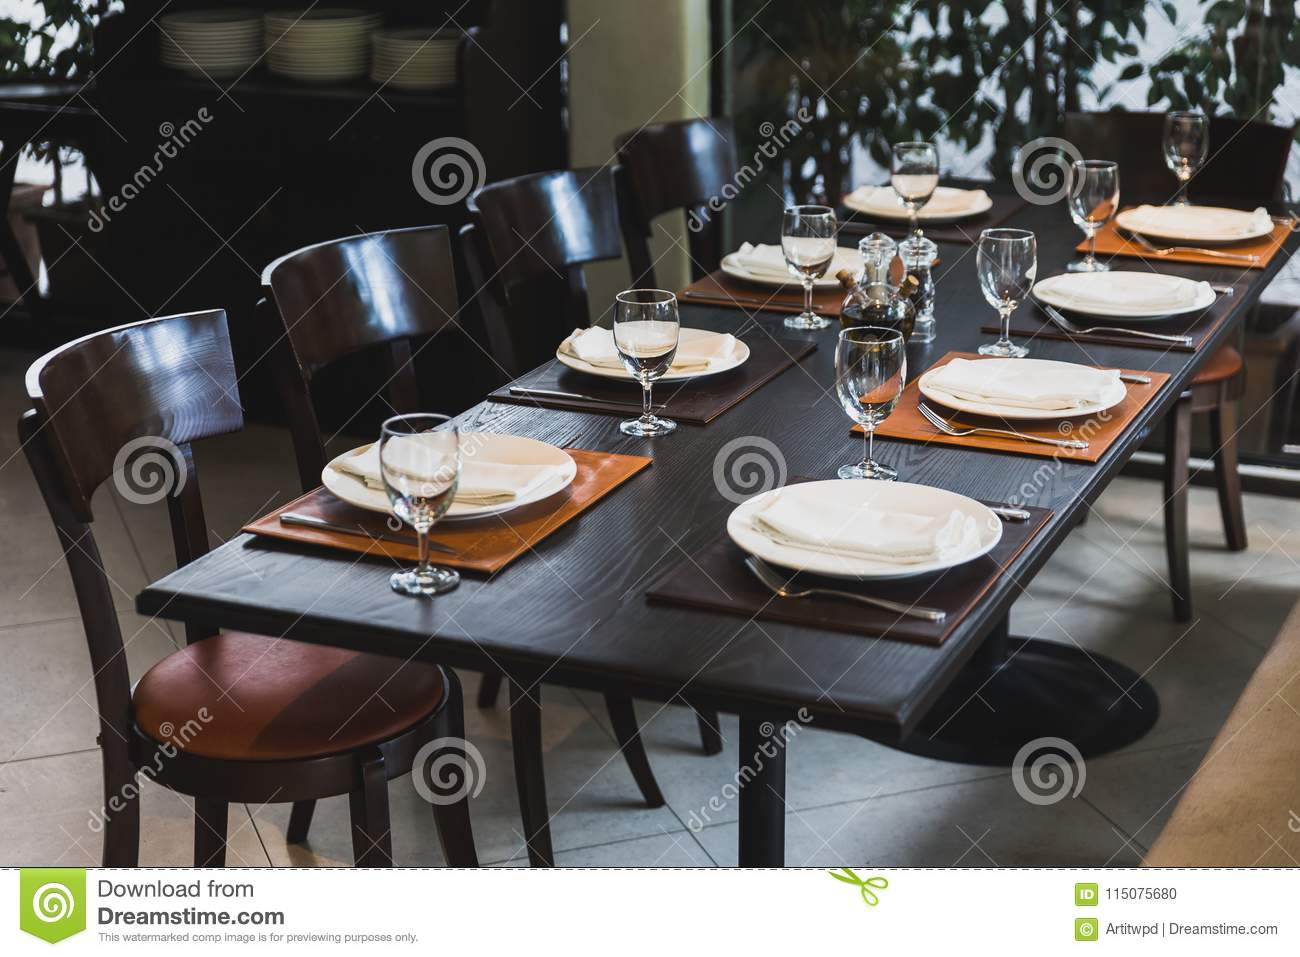 Italian Dinner Table For Eight With Cutleries, Plates, Glasses, Napkins And  Naperies On The Table.